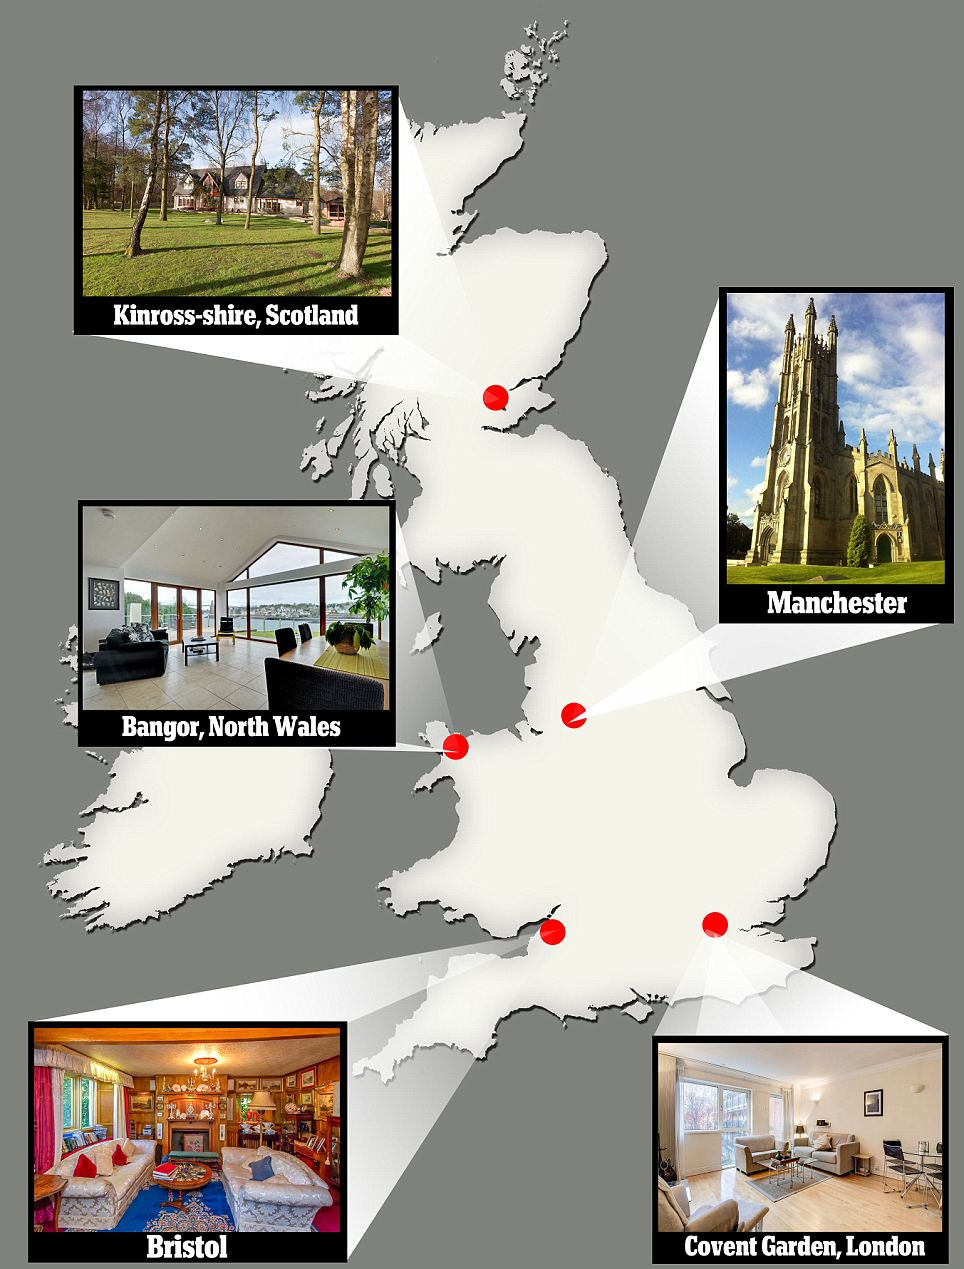 £1 million properties: The size of properties worth £1 million would appear to change depending on how far they are from cities. Smaller properties are based in or near cities, like the property in London, while larger properties can be based in the peace and quiet of the country, like the Scottish property